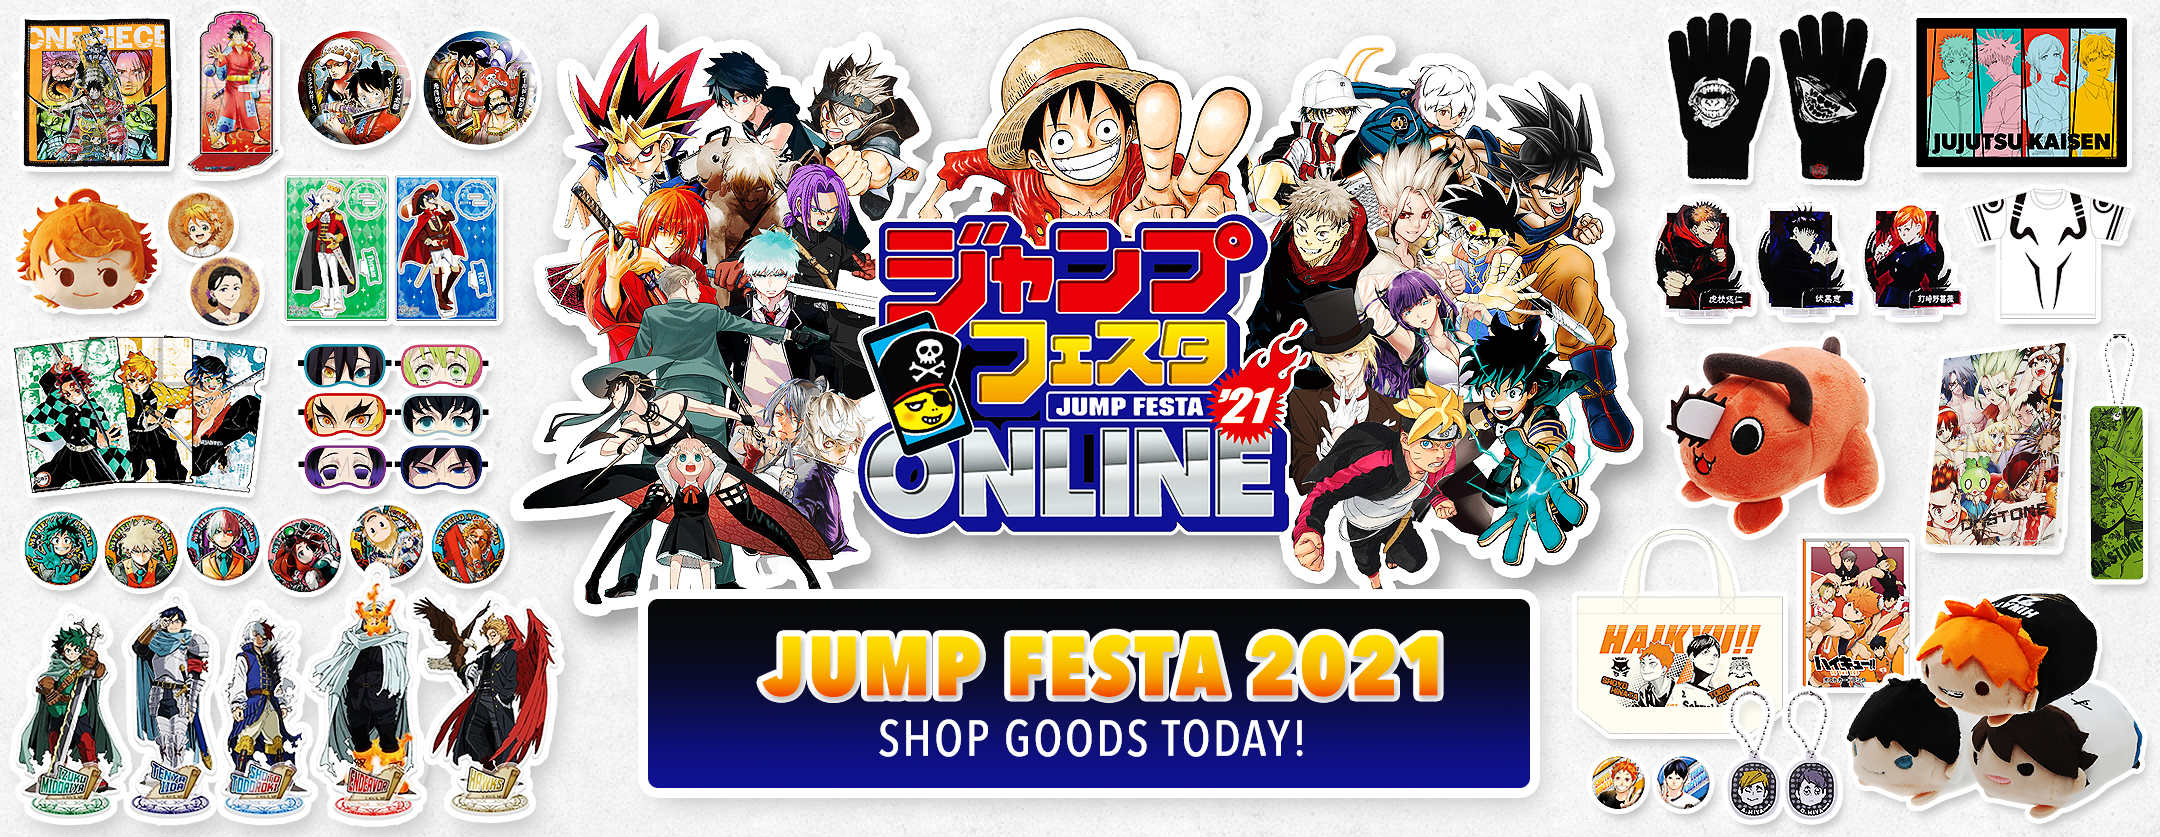 Jump Festa 2021 Online Pre-Order and Buying Process